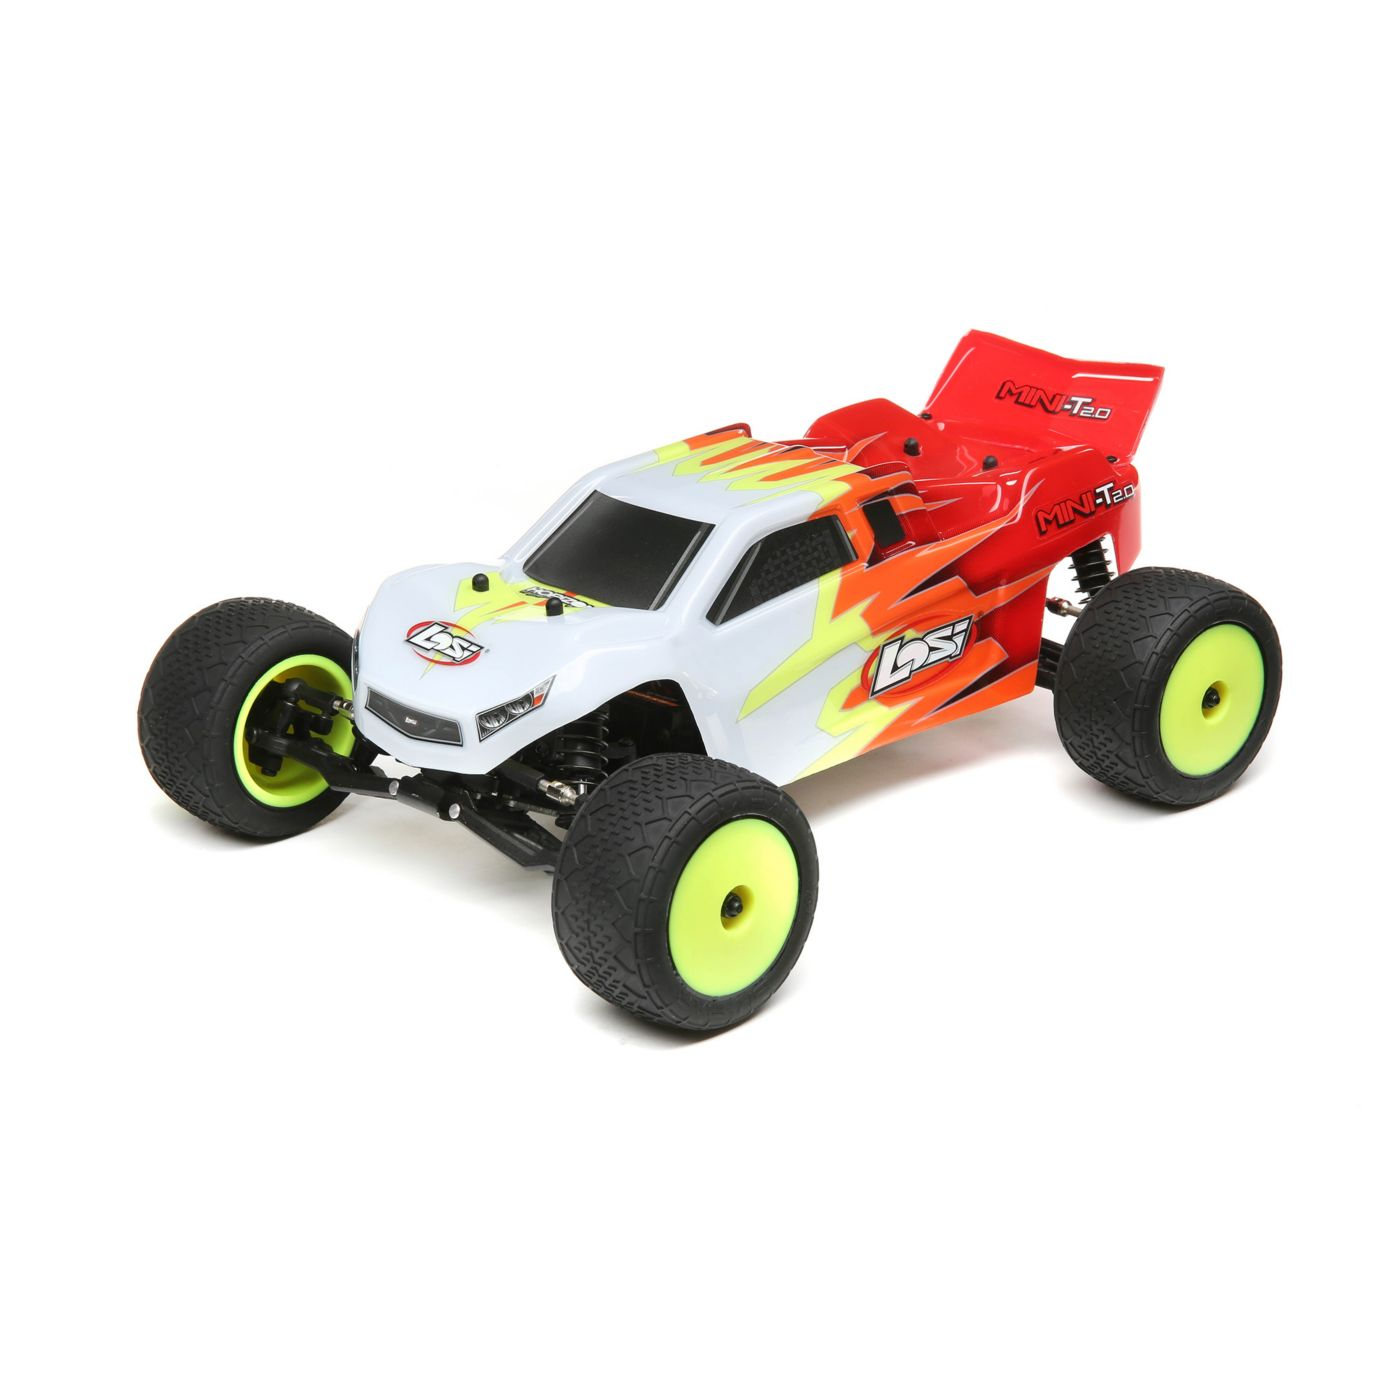 It's Back! Losi Revives the Mini-T Stadium Truck